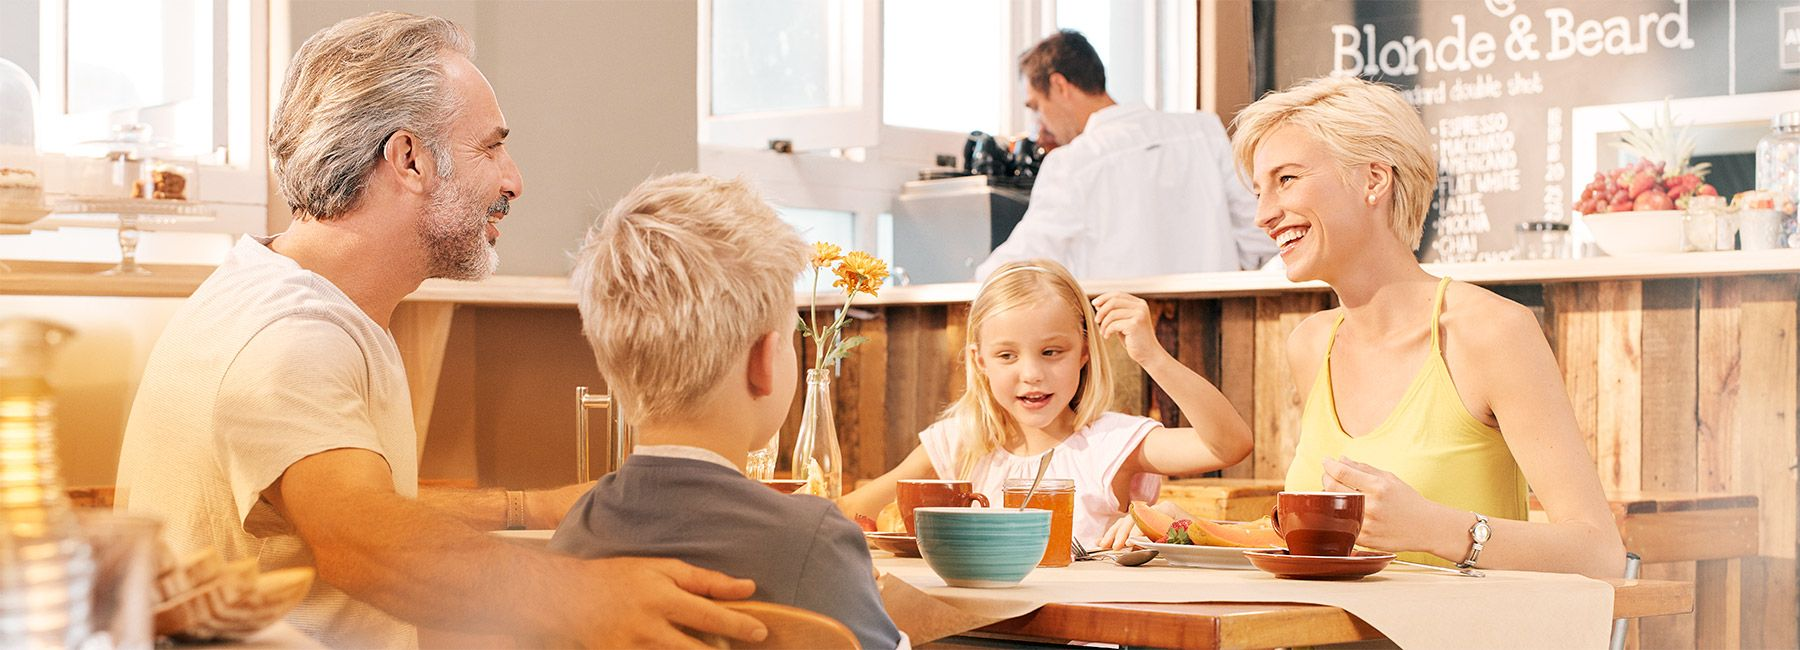 primax-situation-1_family-breakfast_1800x650px.jpg